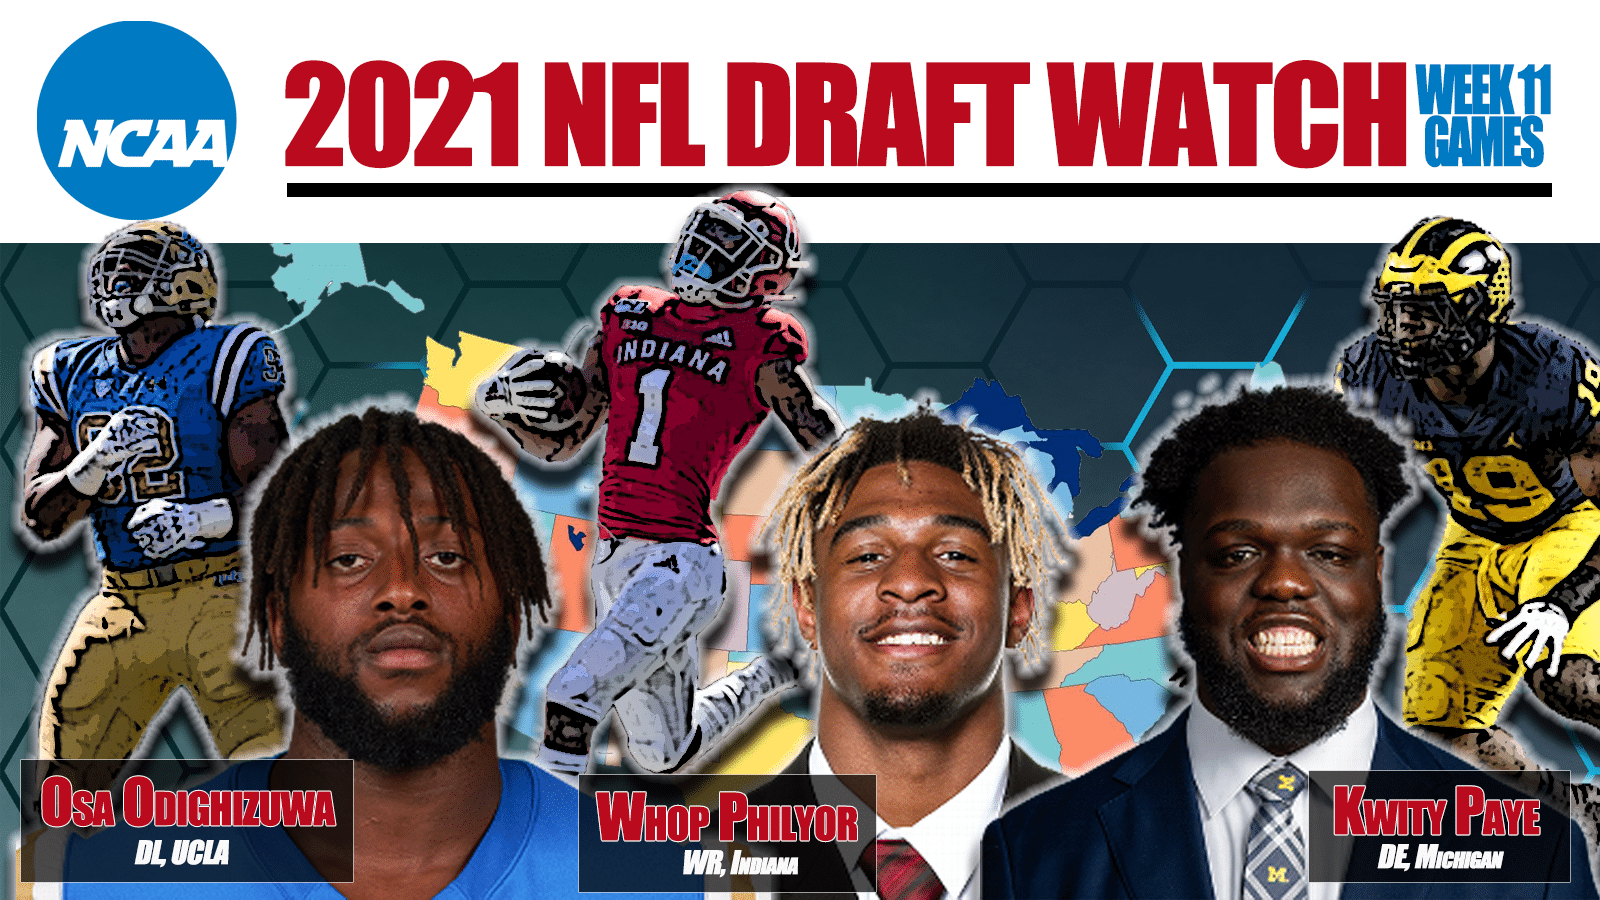 Week 11 NFL Draft Watch